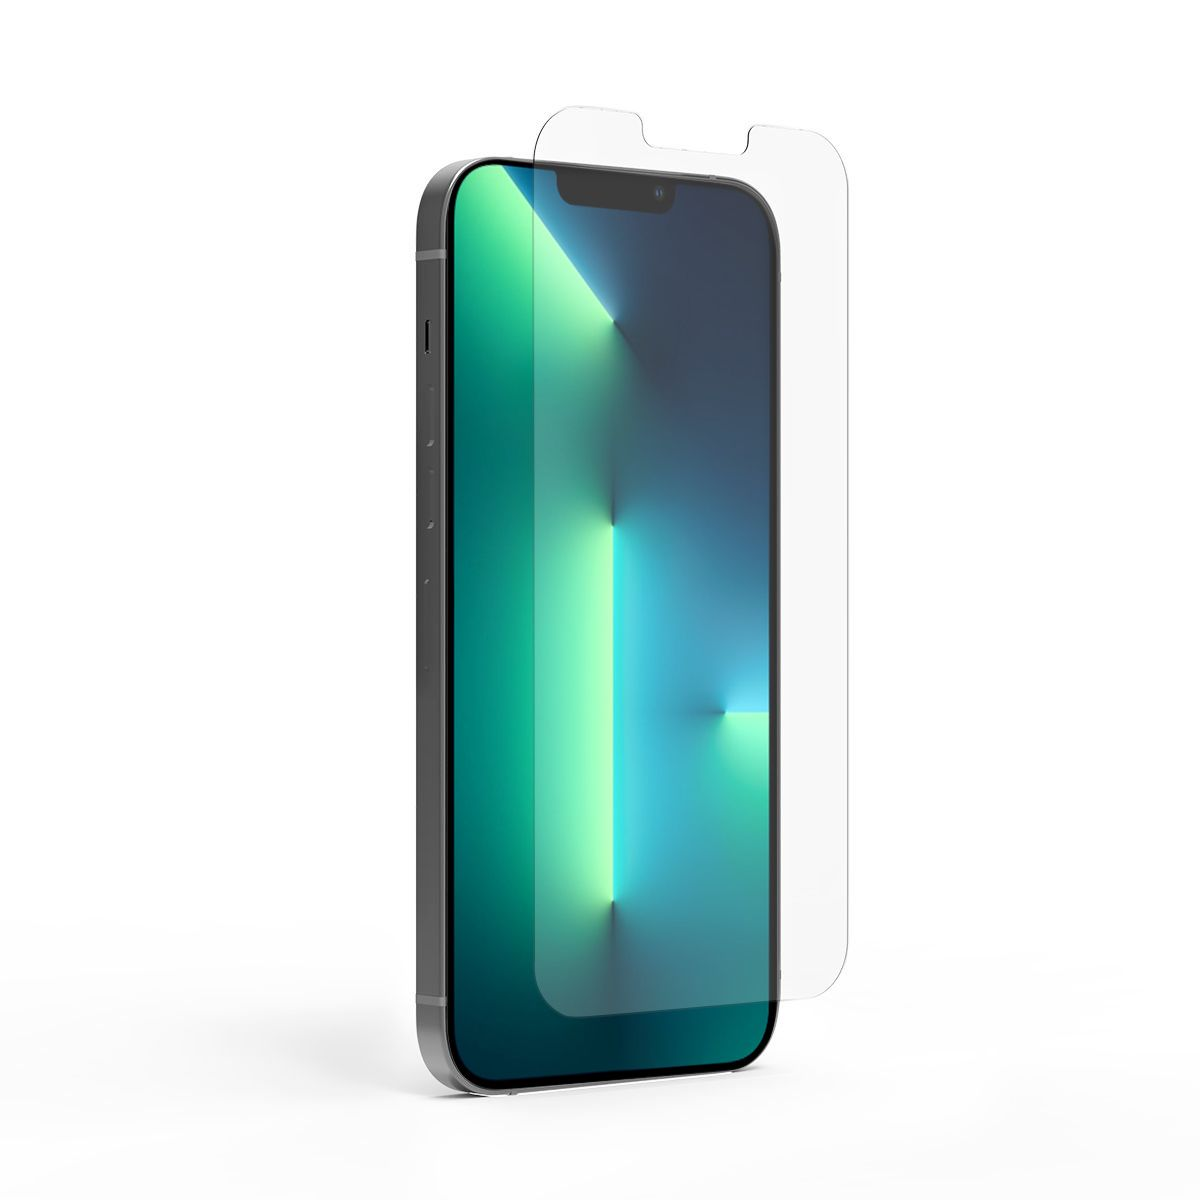 Apple iPhone 13 Pro Max Steel 360 Antimicrobial Tempered Glass Screen Protector with Alignment Tray and Pure Pledge up to $100